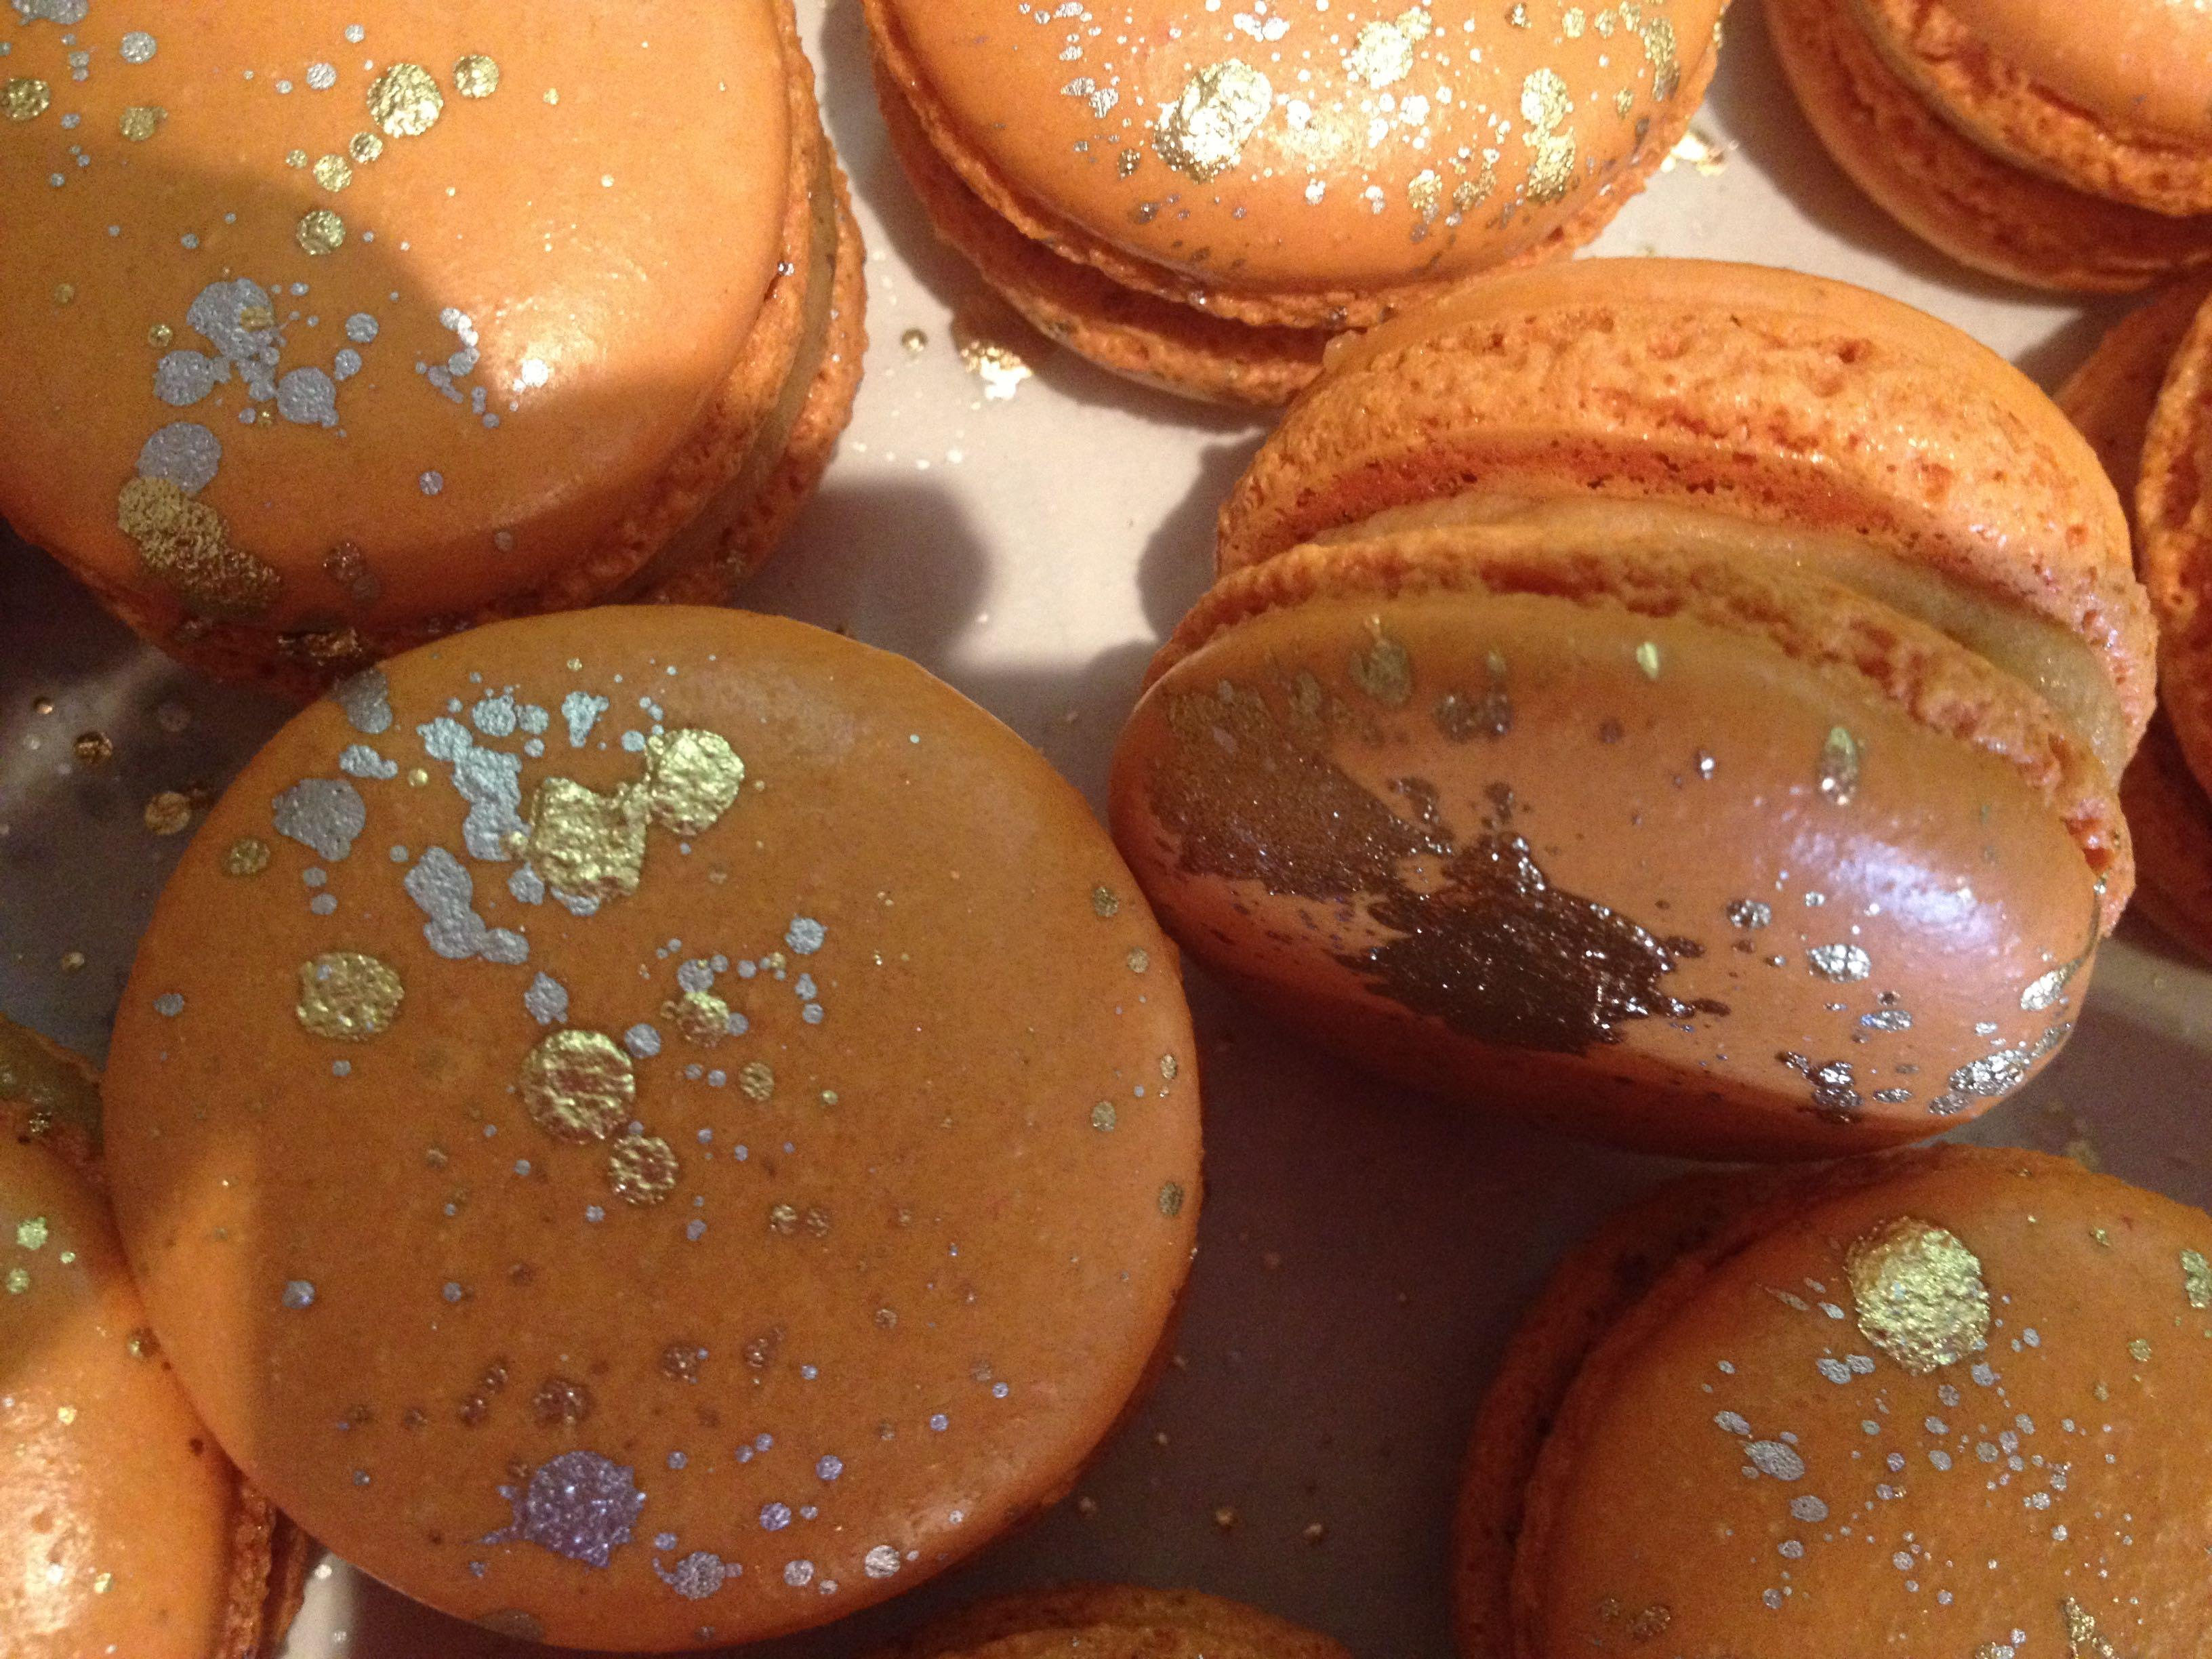 Salted Caramel Macarons at Michele Coulon Dessertiere